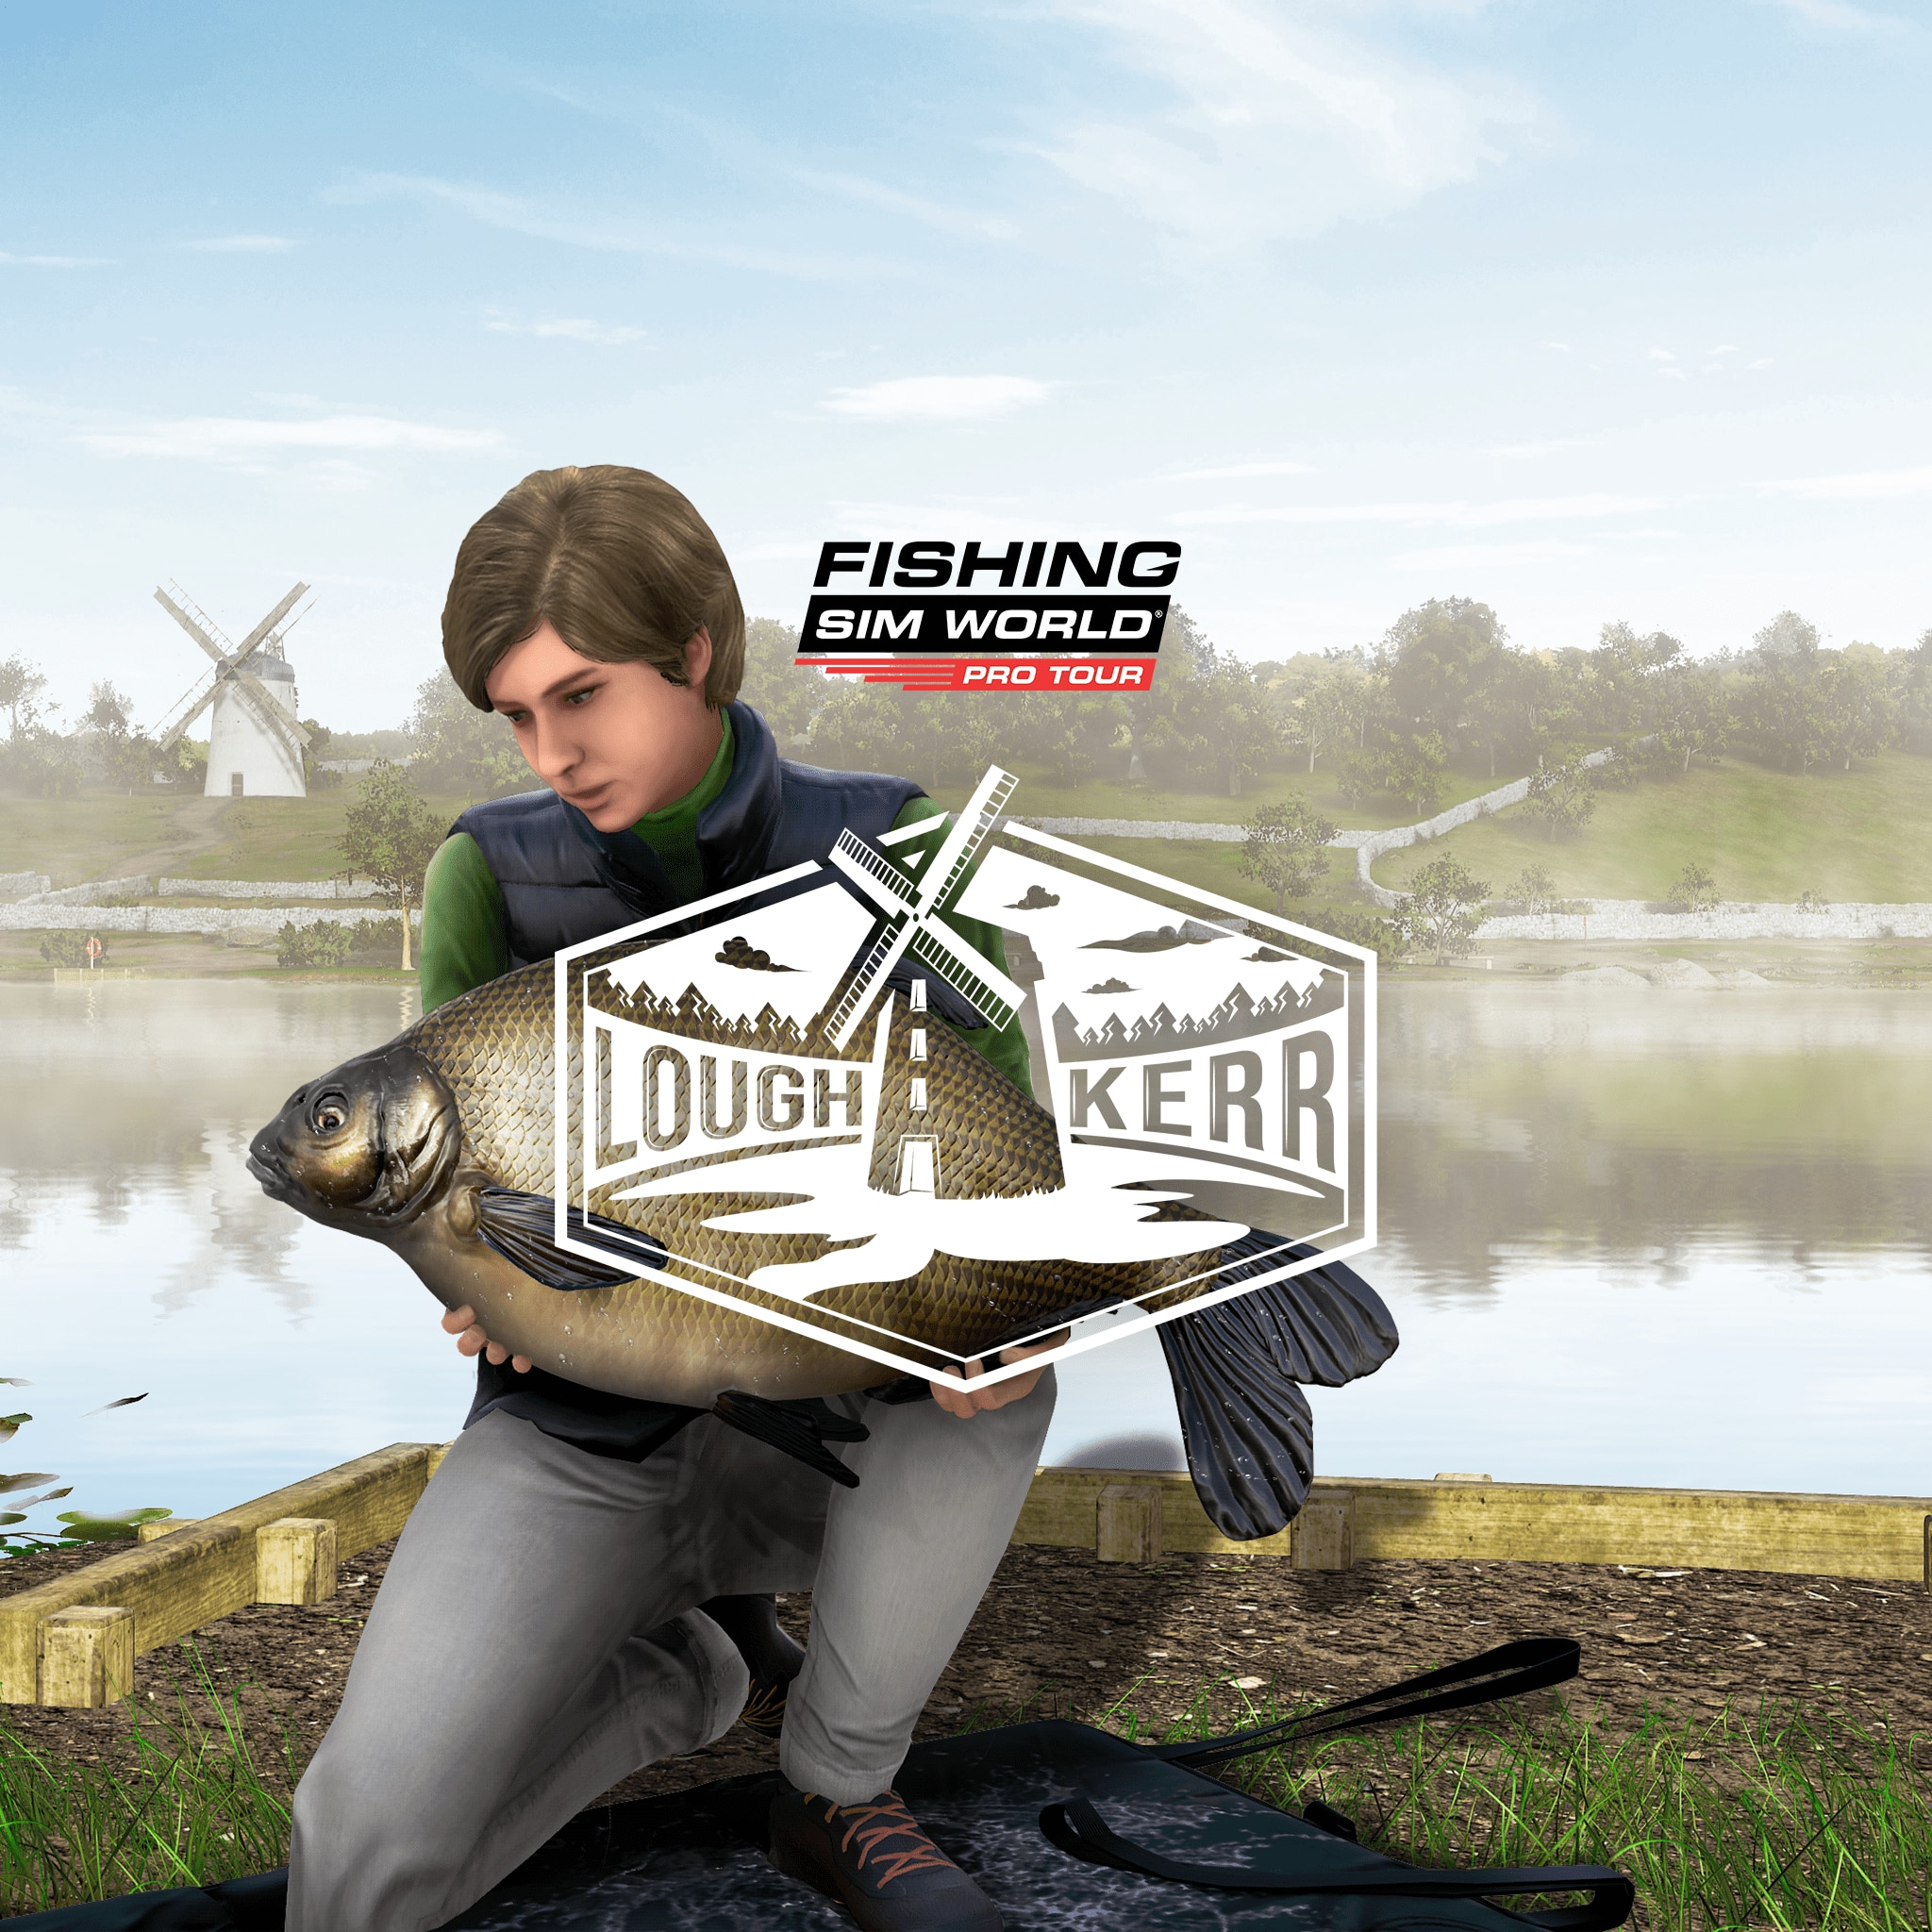 Fishing Sim World®: Pro Tour - Lough Kerr